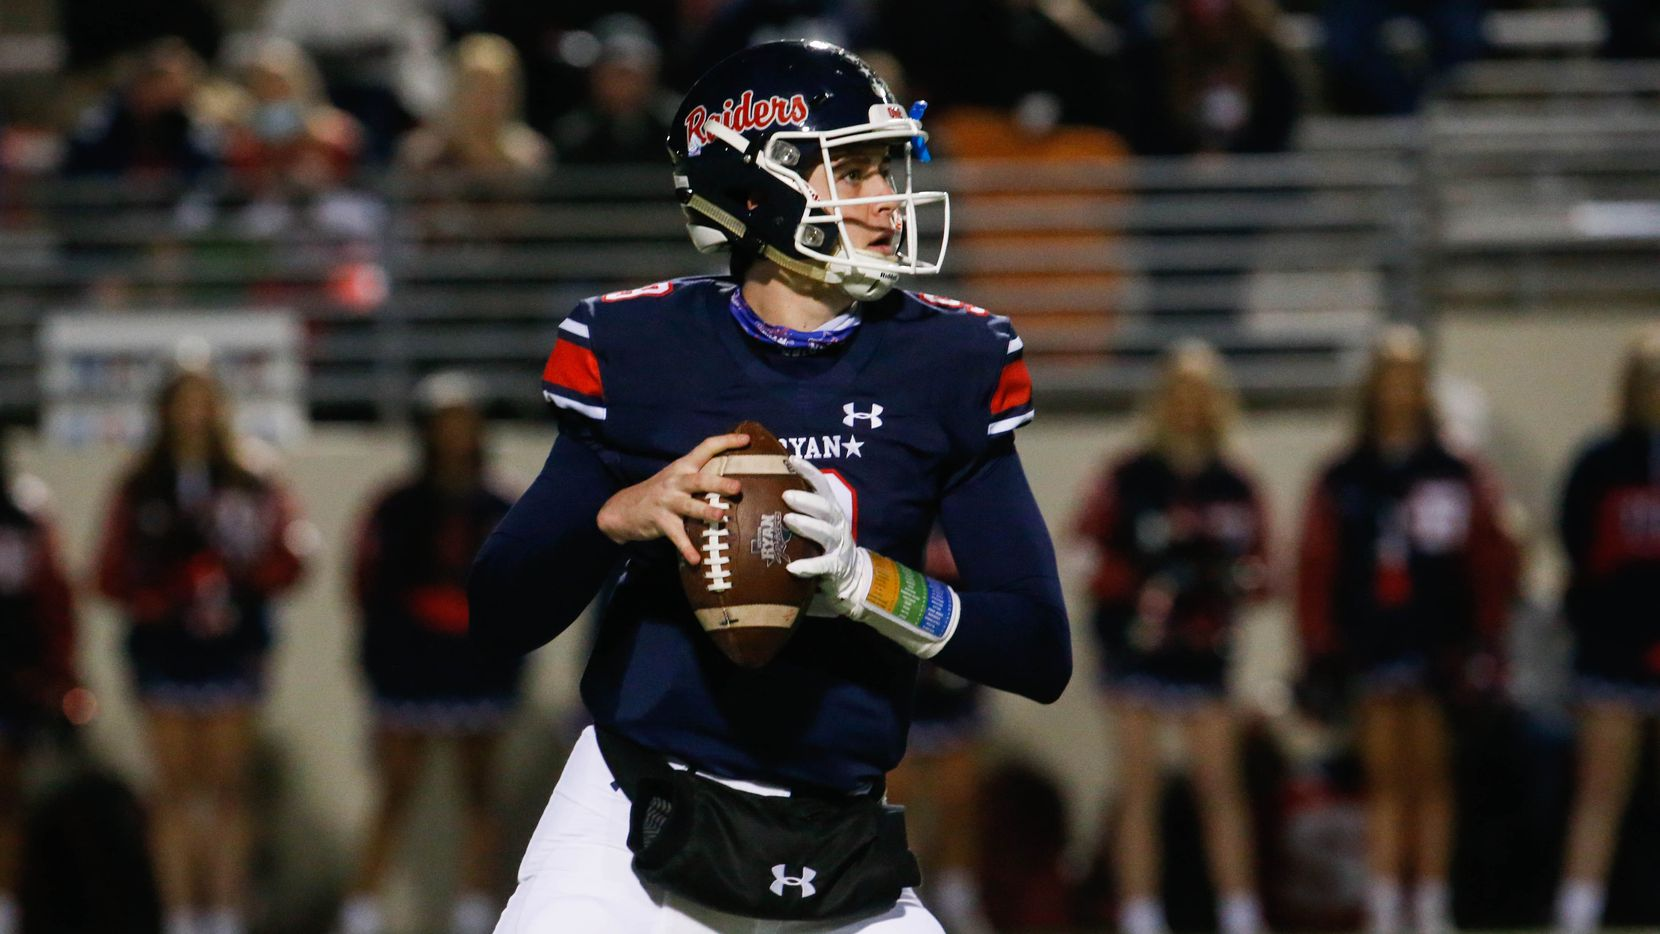 Denton Ryan's quarterback Seth Henigan (9) gets ready to throw the ball during the second quarter of a football game against Frisco Lone Star at the C.H. Collins Complex in Denton on Thursday, Dec. 4, 2020. The game is tied at halftime, 14-14.